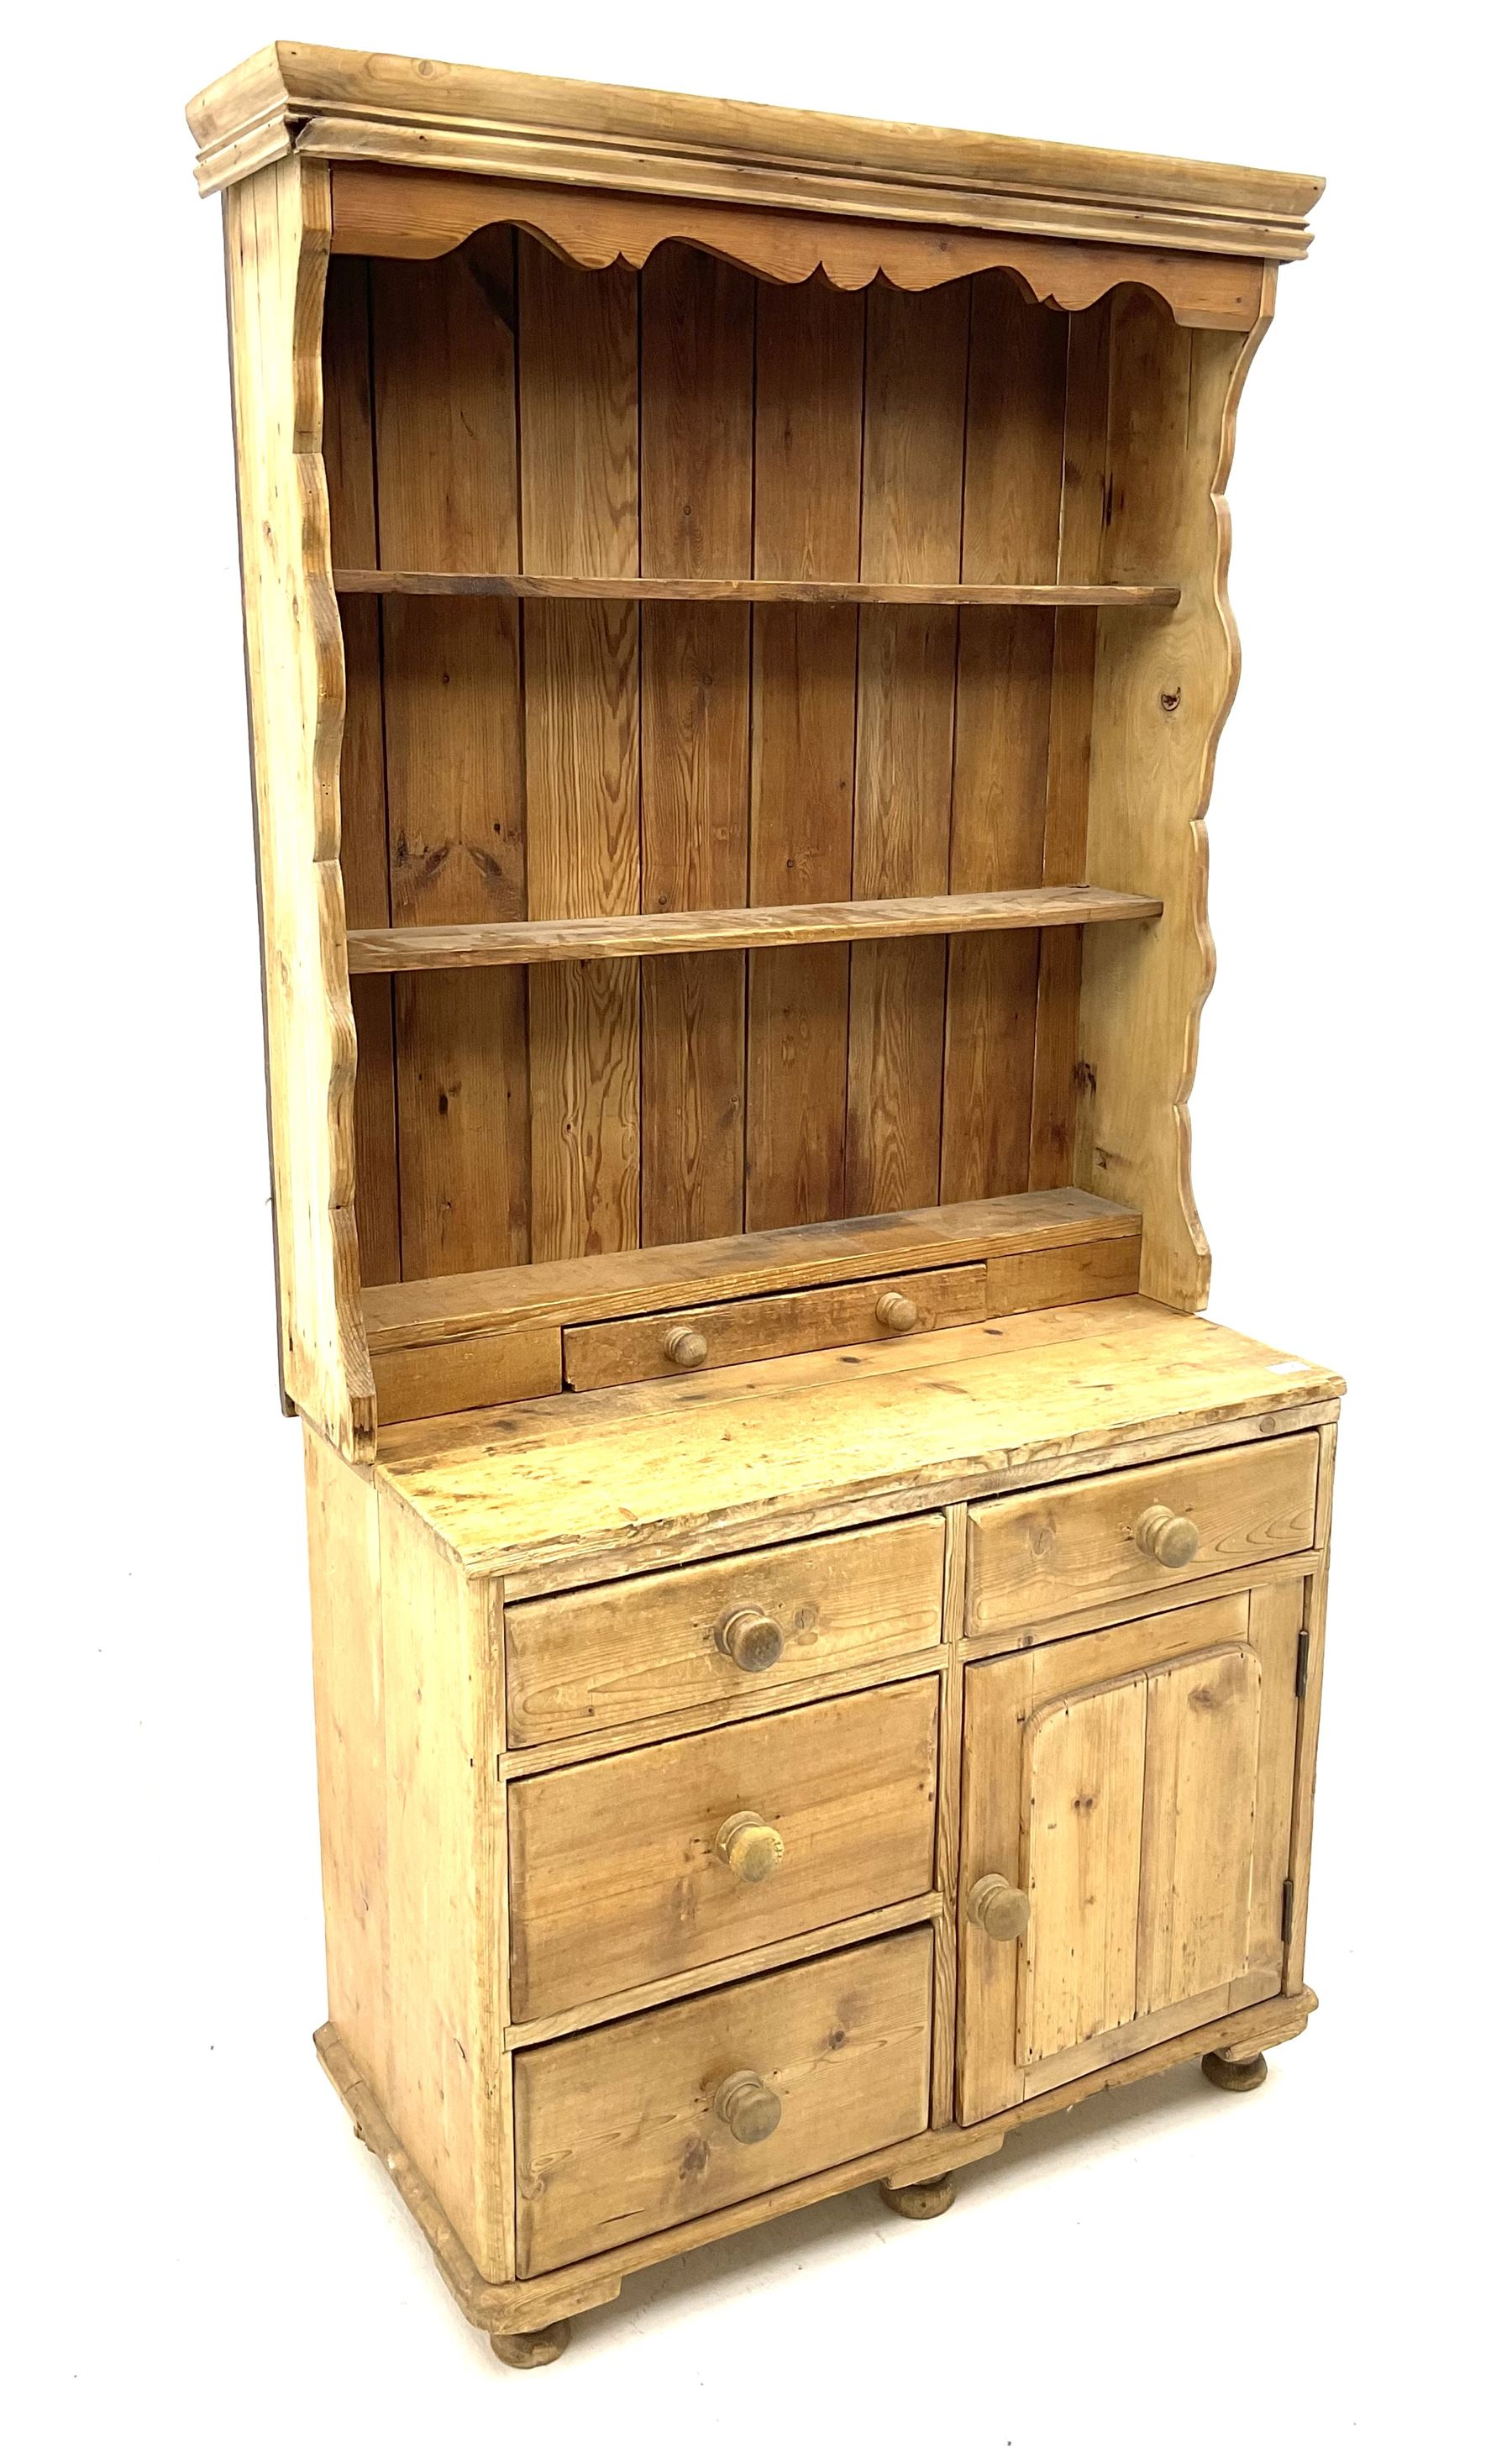 19th century and later pine chest with plate rack - Image 2 of 3